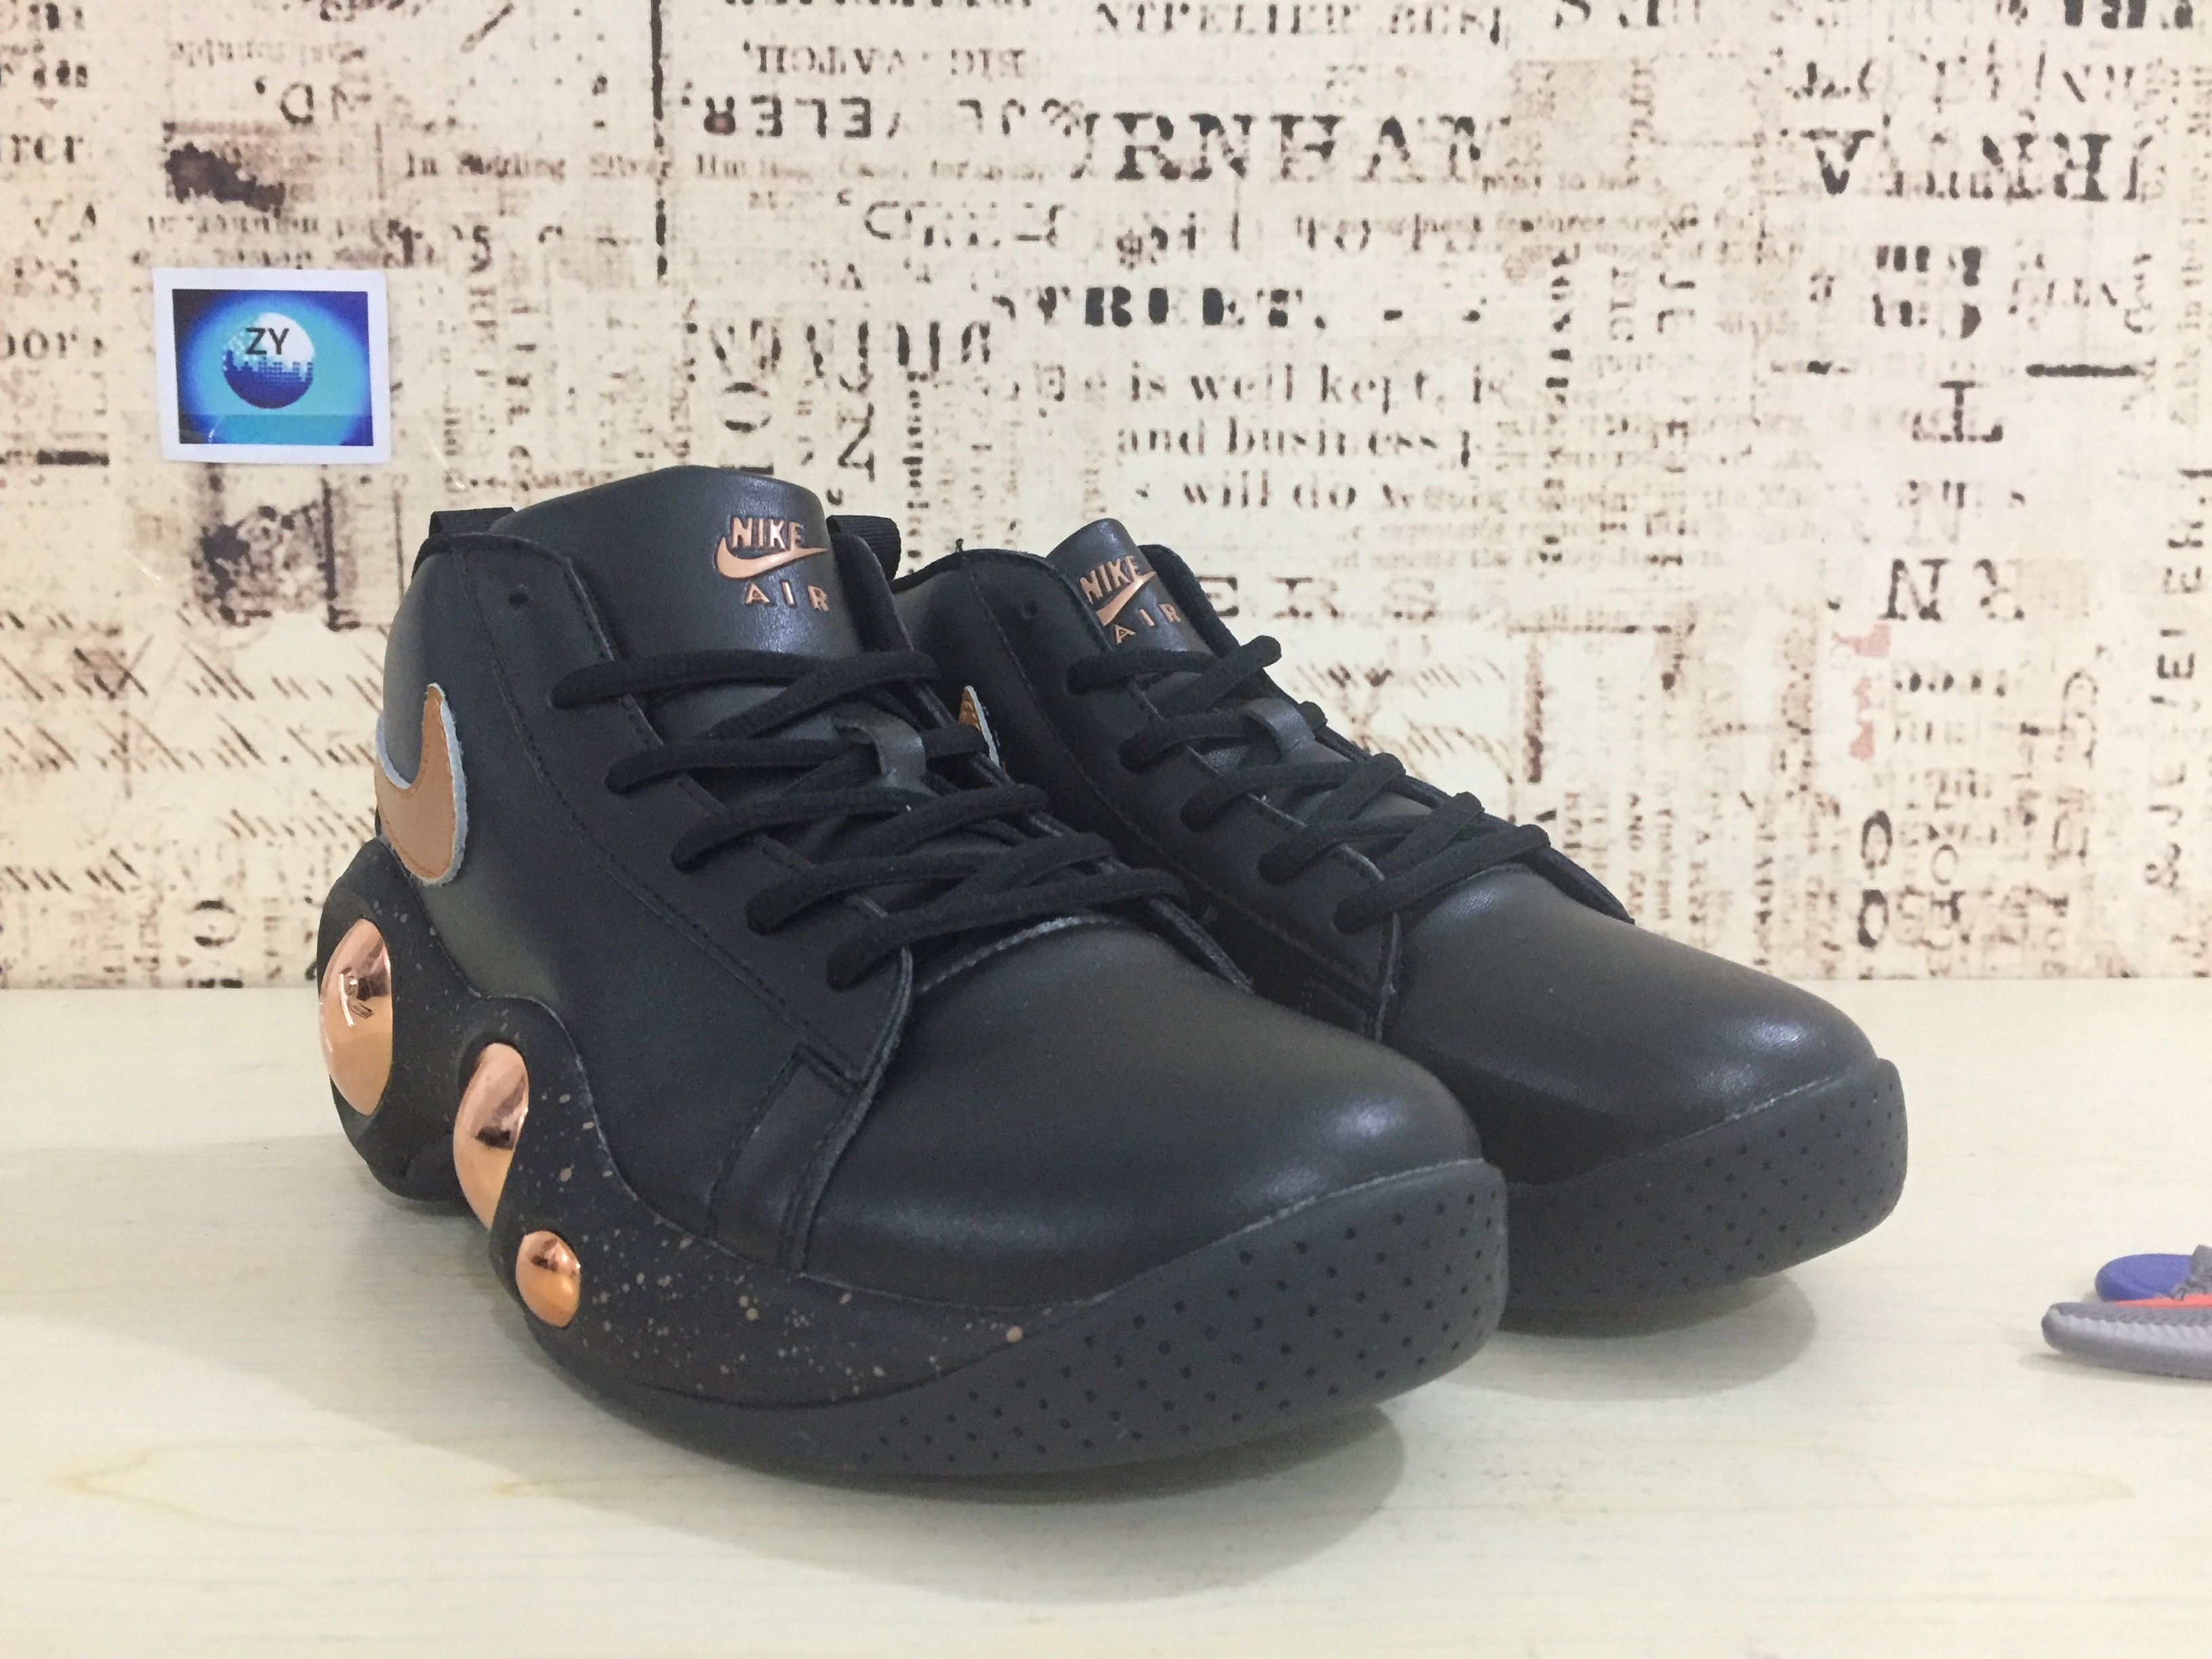 Nike Zoom Bonafide Black Gold Shoes